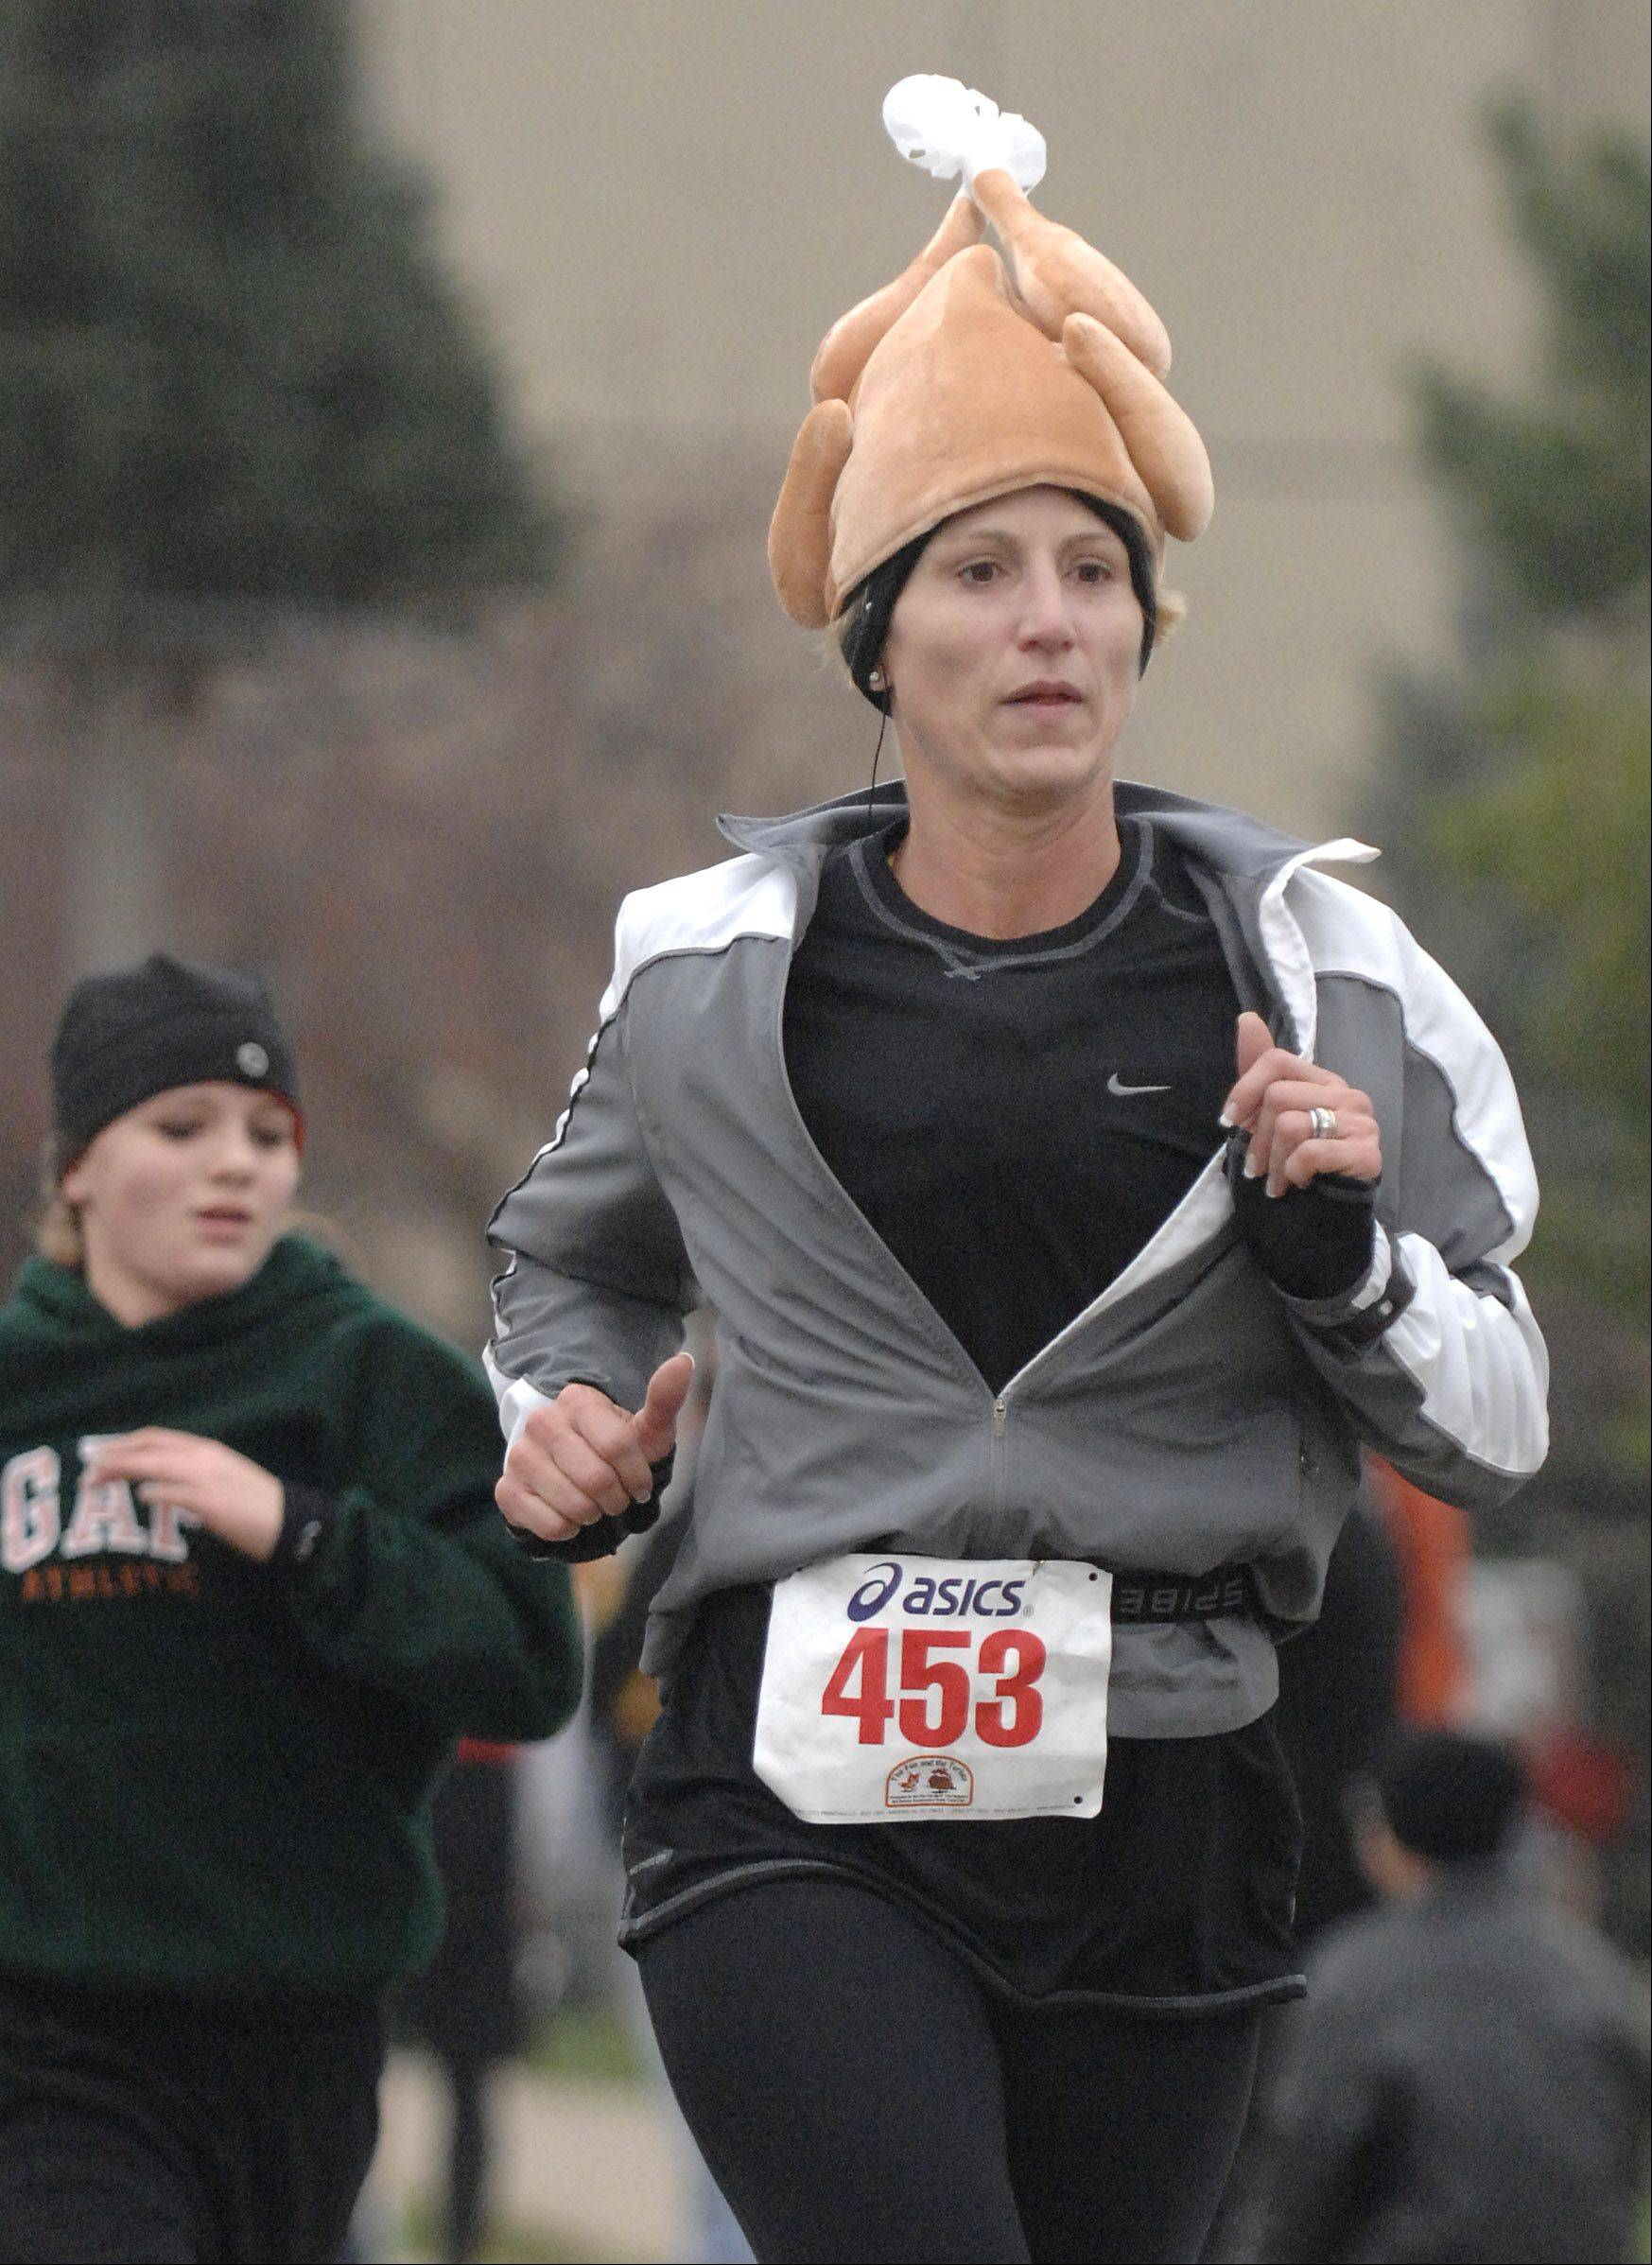 Bethann Bock of South Elgin nears the finish line in the 15th annual Fox and the Turkey 4-Mile in Batavia on Thanksgiving morning last year. Bock ran with her son, Rob, and several other family members visiting from out of town.